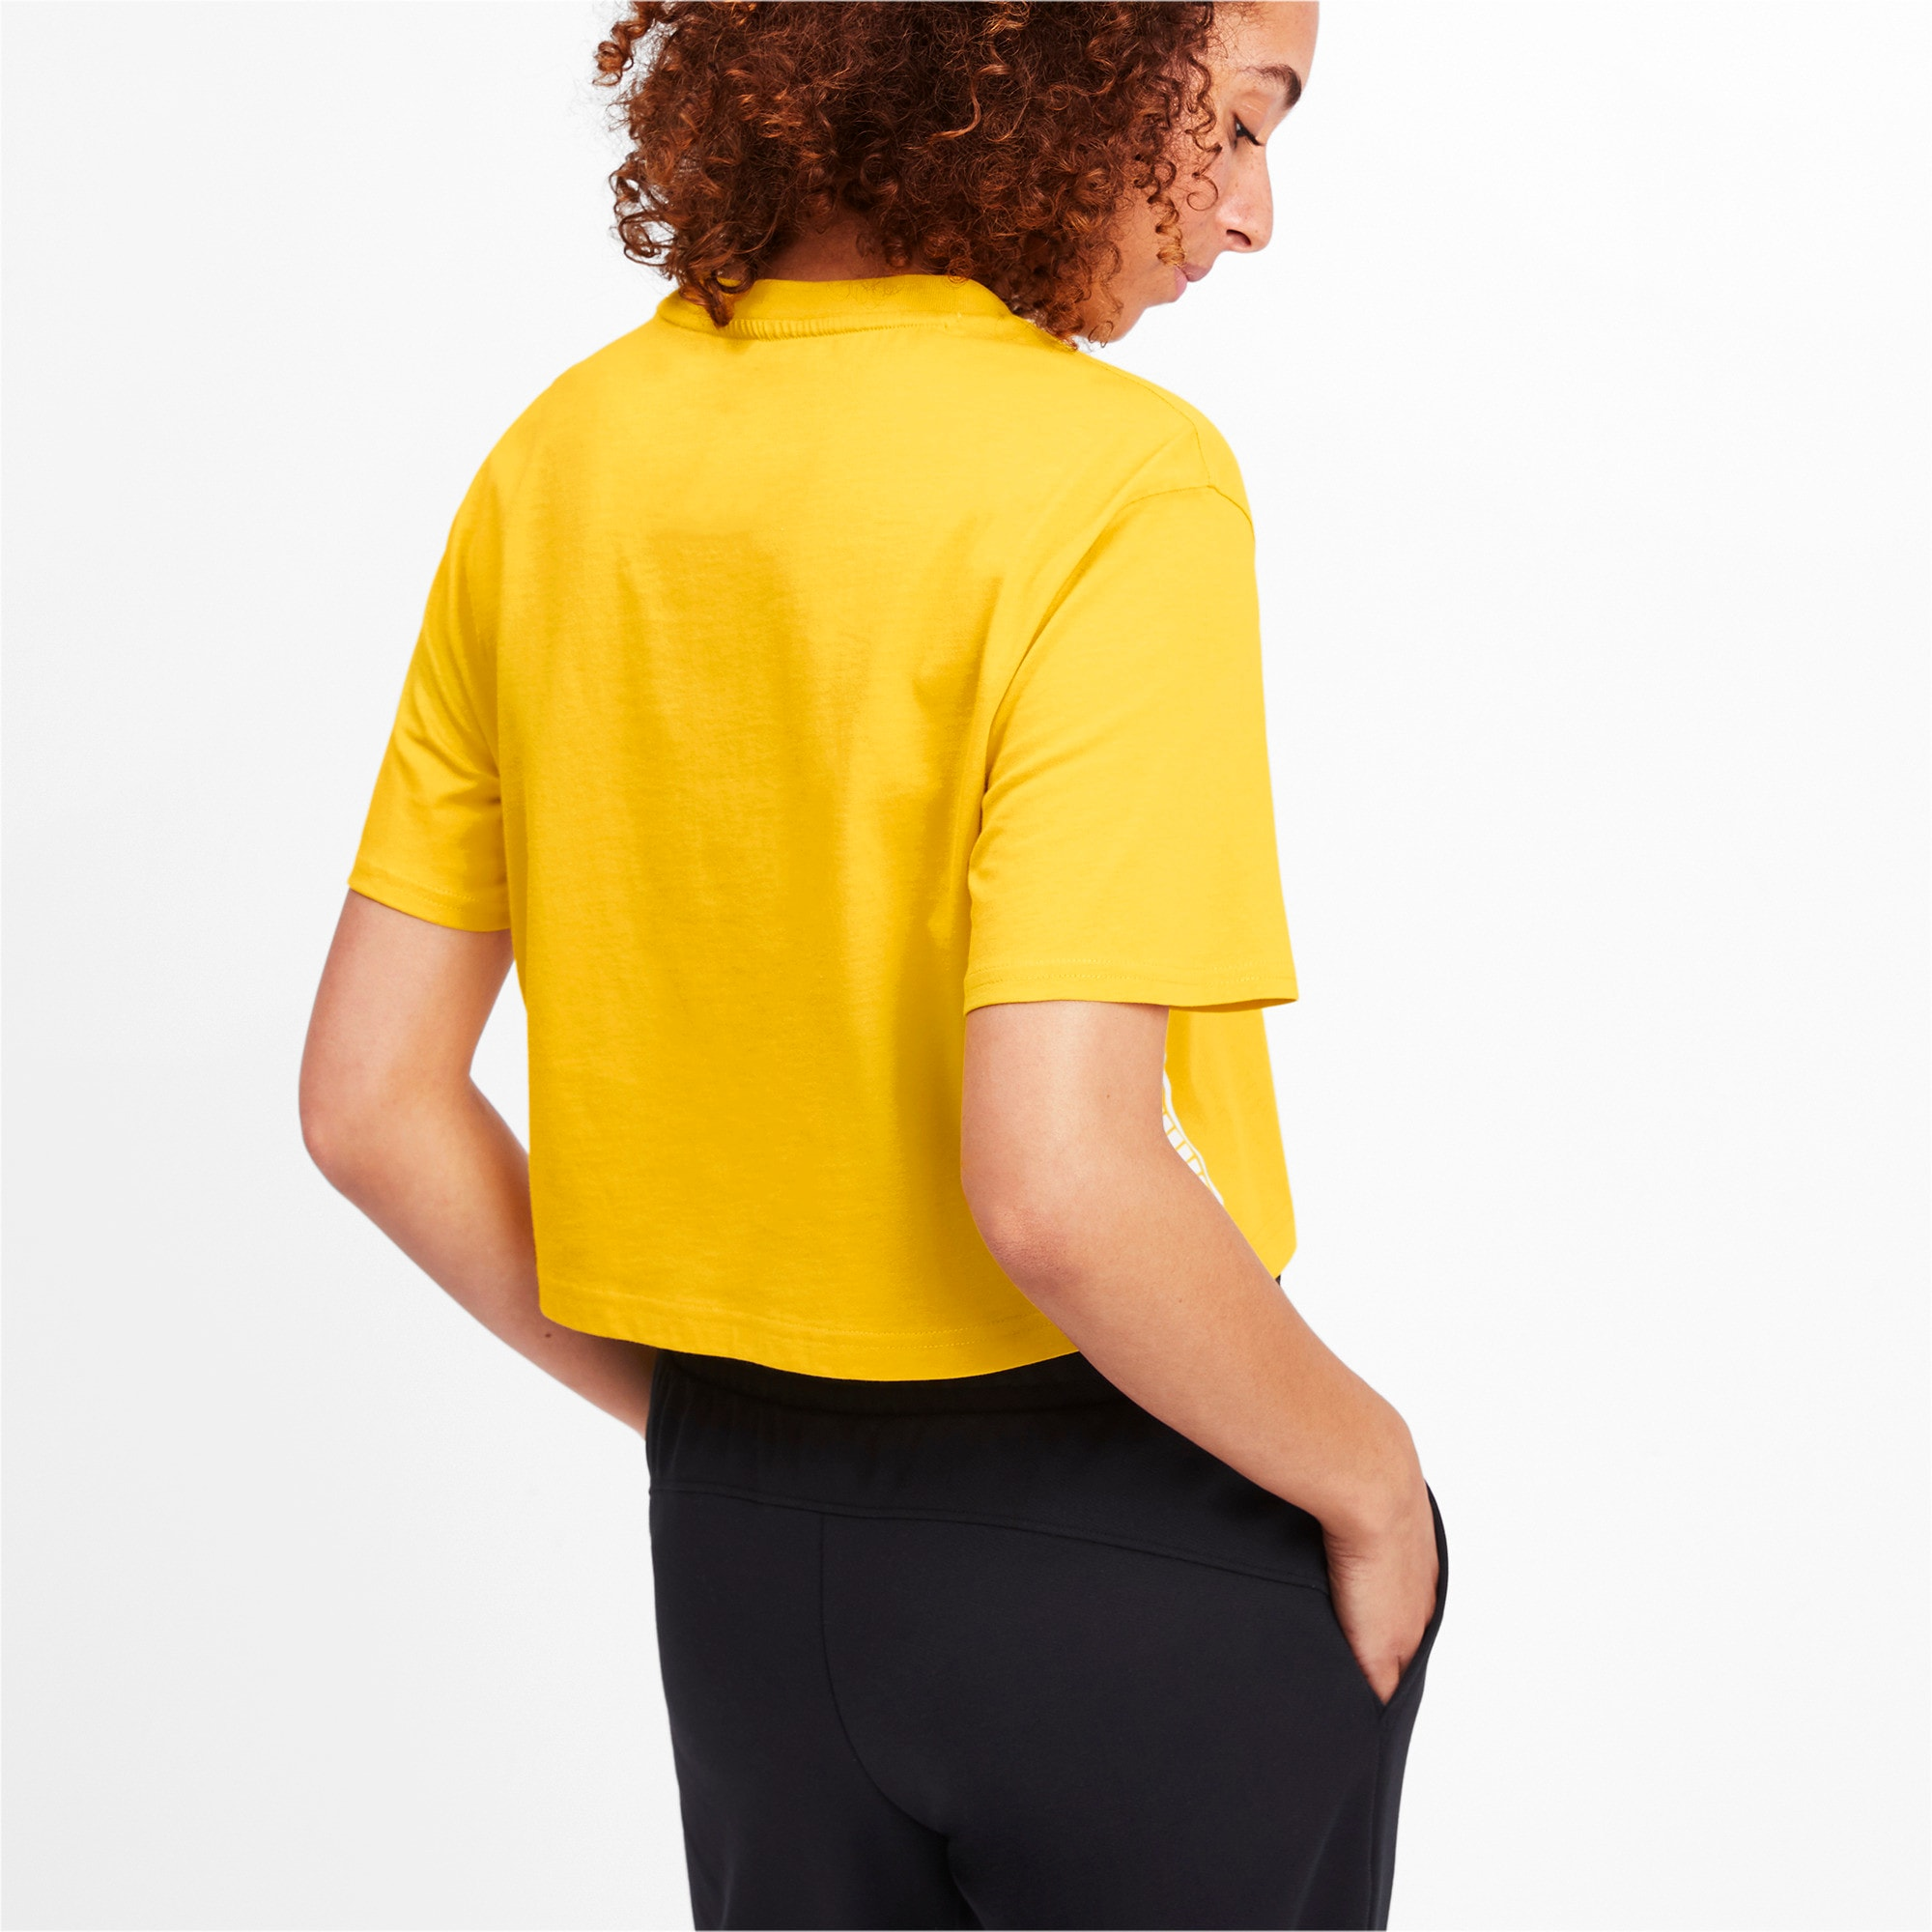 Thumbnail 2 of Amplified Cropped Women's Tee, Sulphur, medium-IND